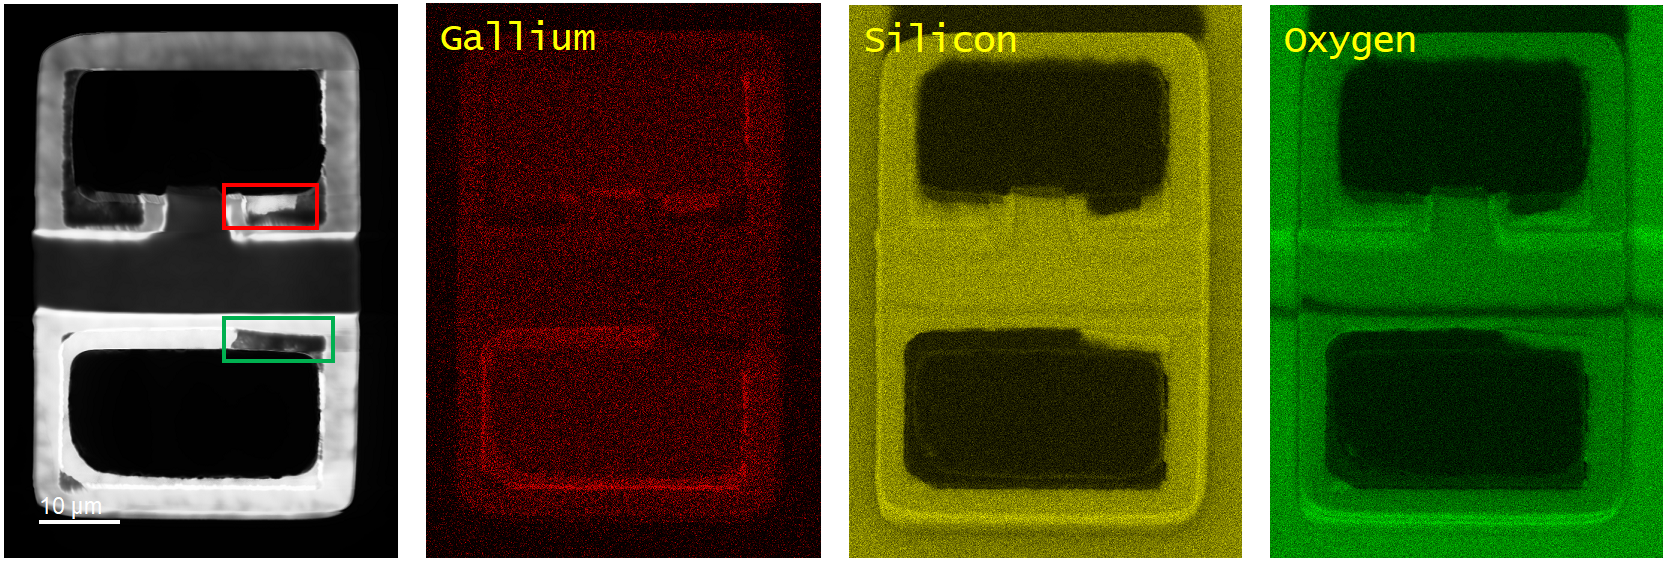 (left) Unfiltered CL image and EDS material composition results of a defect LED. EDS material mapping for gallium (red), silicon (yellow), and oxygen (green).